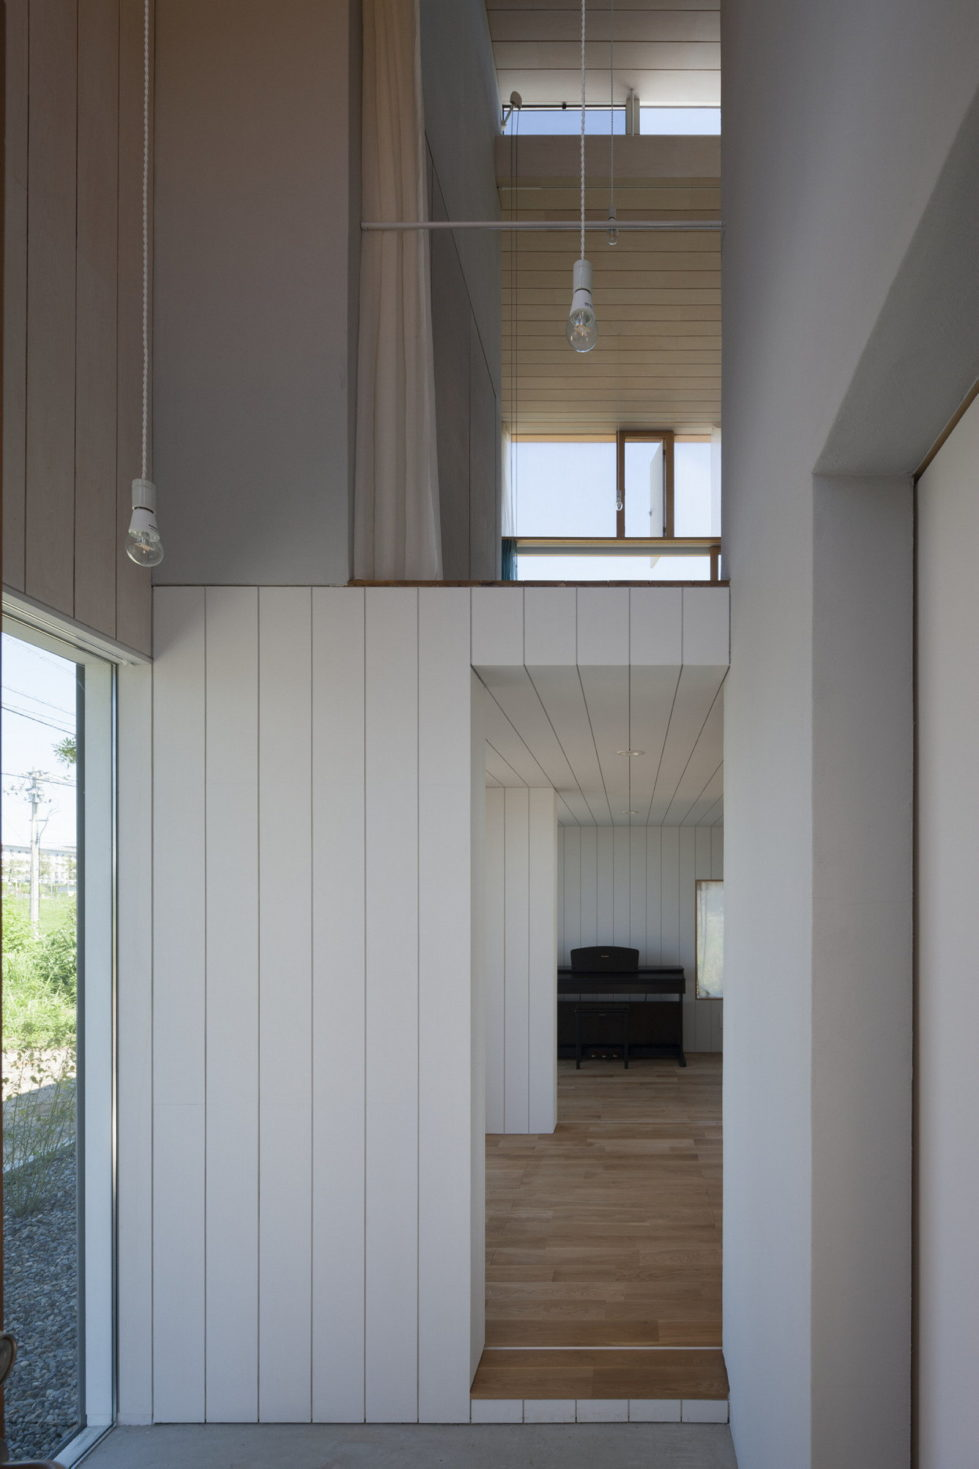 The family idyll in Japan from the Ihrmk studio 8